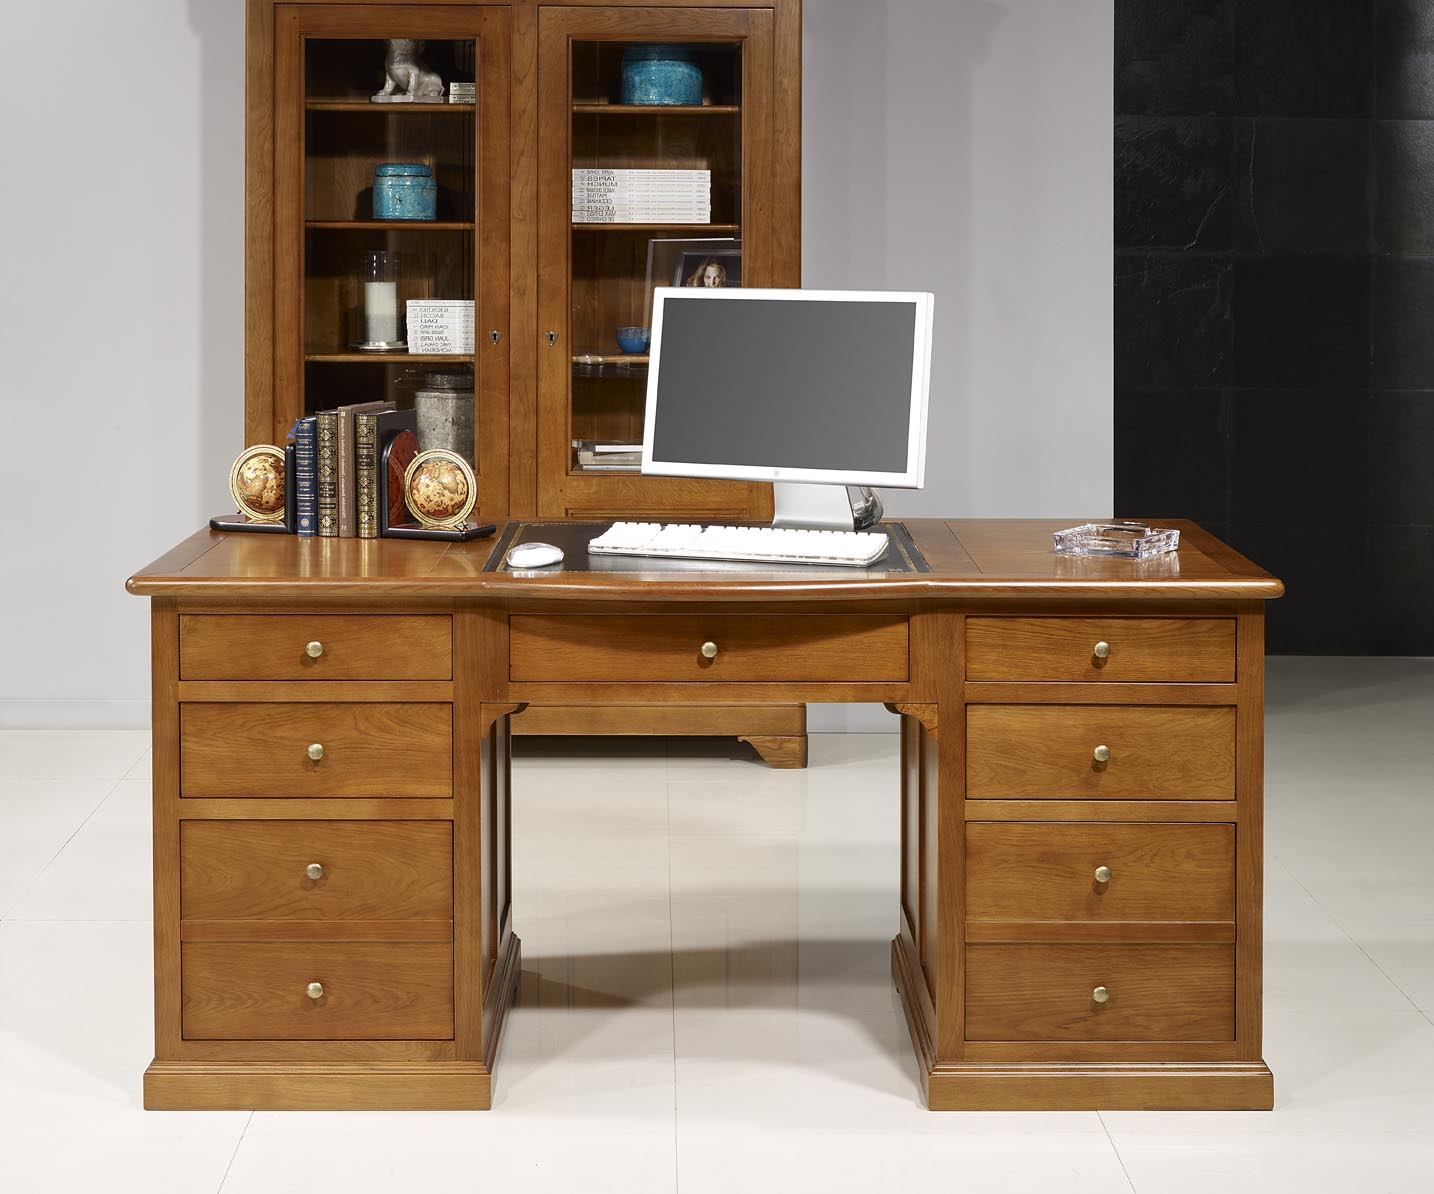 bureau ministre sp cial dossiers suspendus en ch ne massif de style louis philippe meuble en. Black Bedroom Furniture Sets. Home Design Ideas